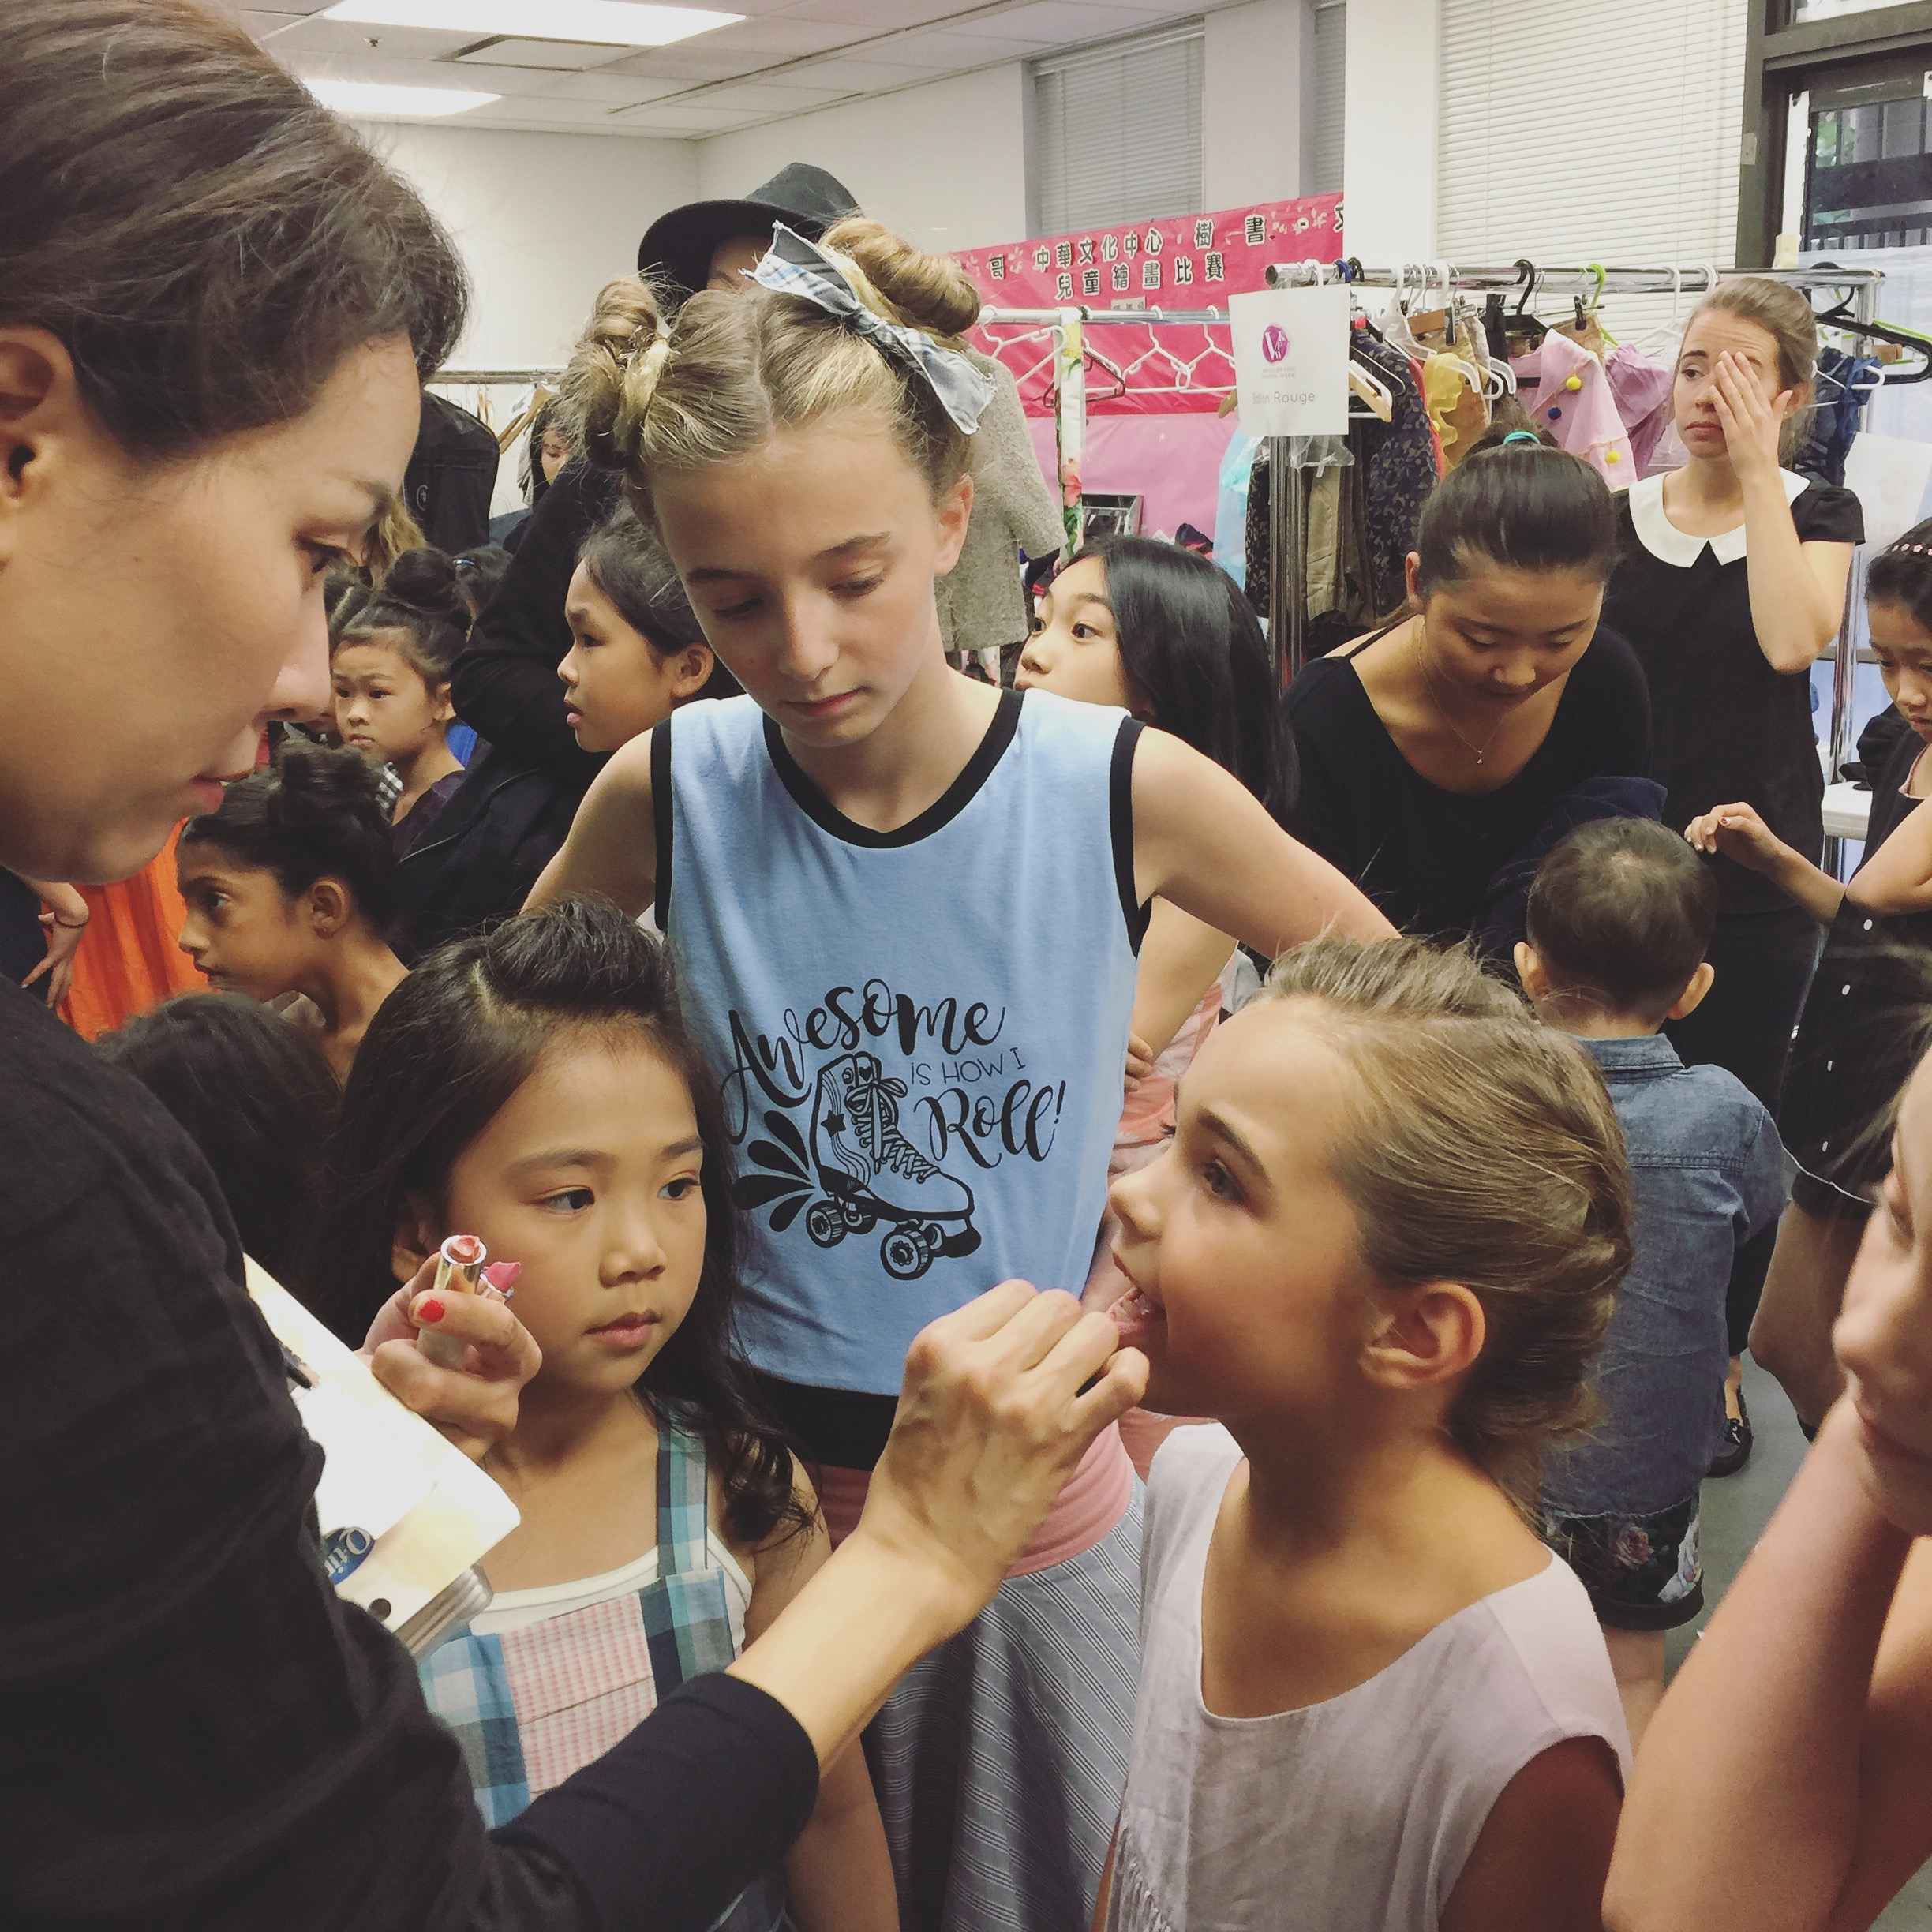 Models getting last minute make up touch ups before hitting the cat walk